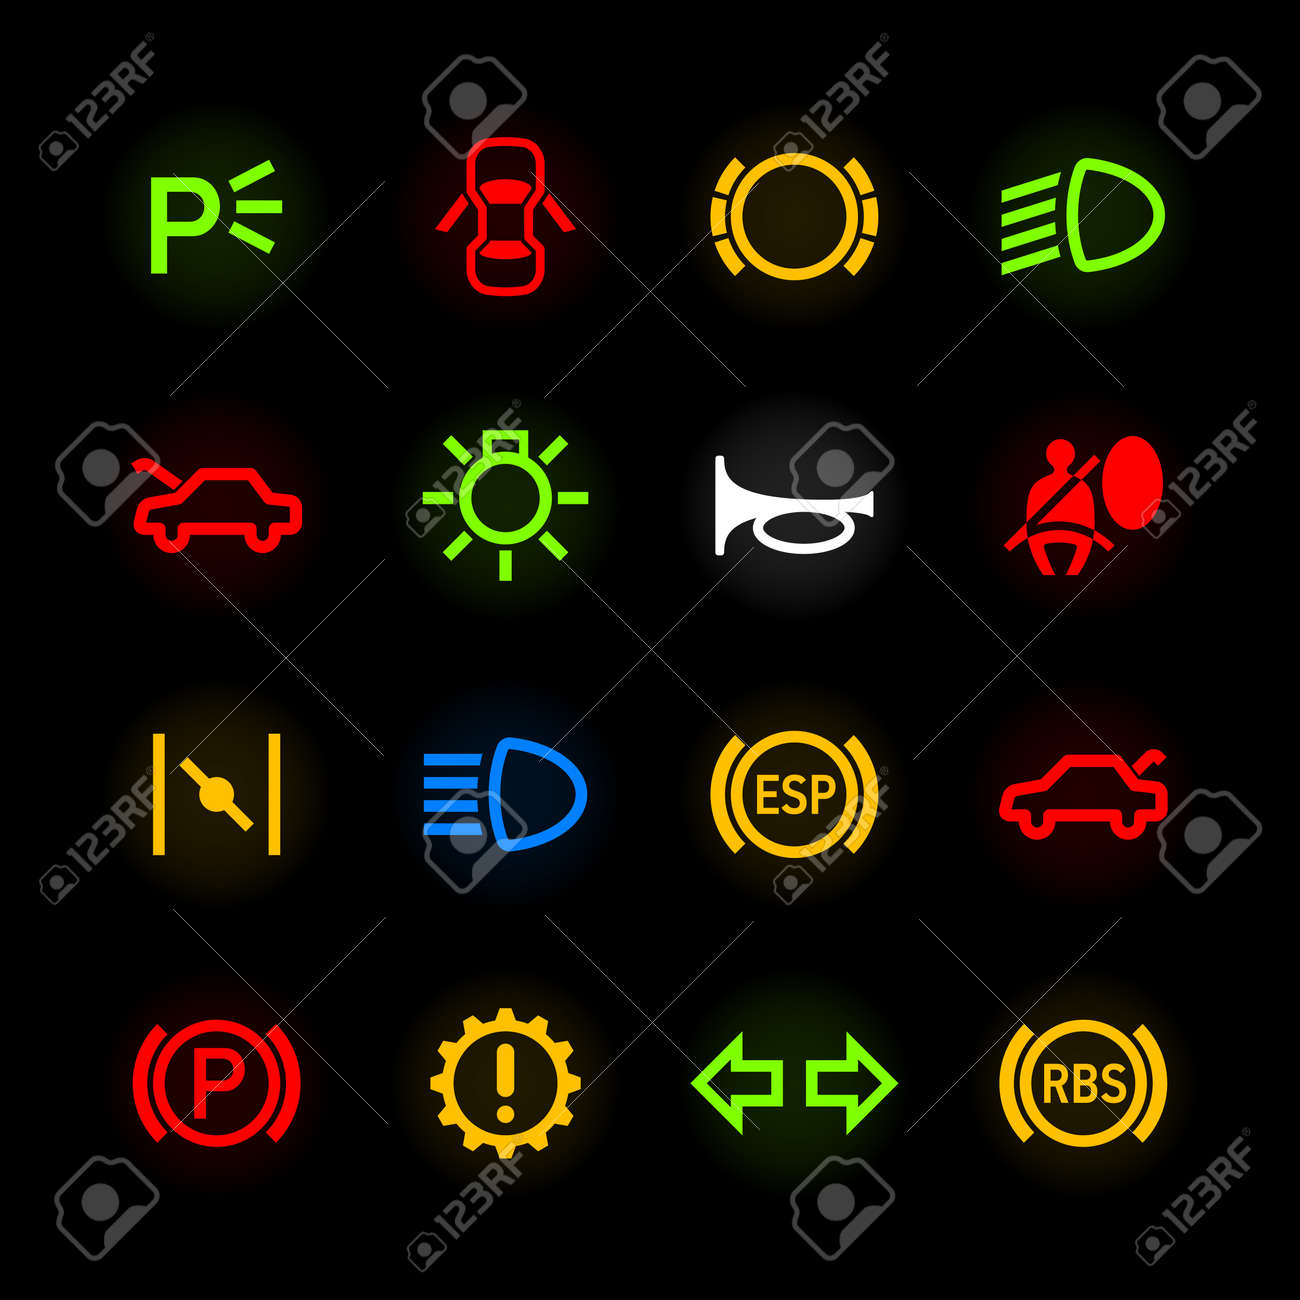 Car Dashboard Icons Royalty Free Cliparts Vectors And Stock - Car image sign of dashboardcar dashboard icons stock images royaltyfree imagesvectors